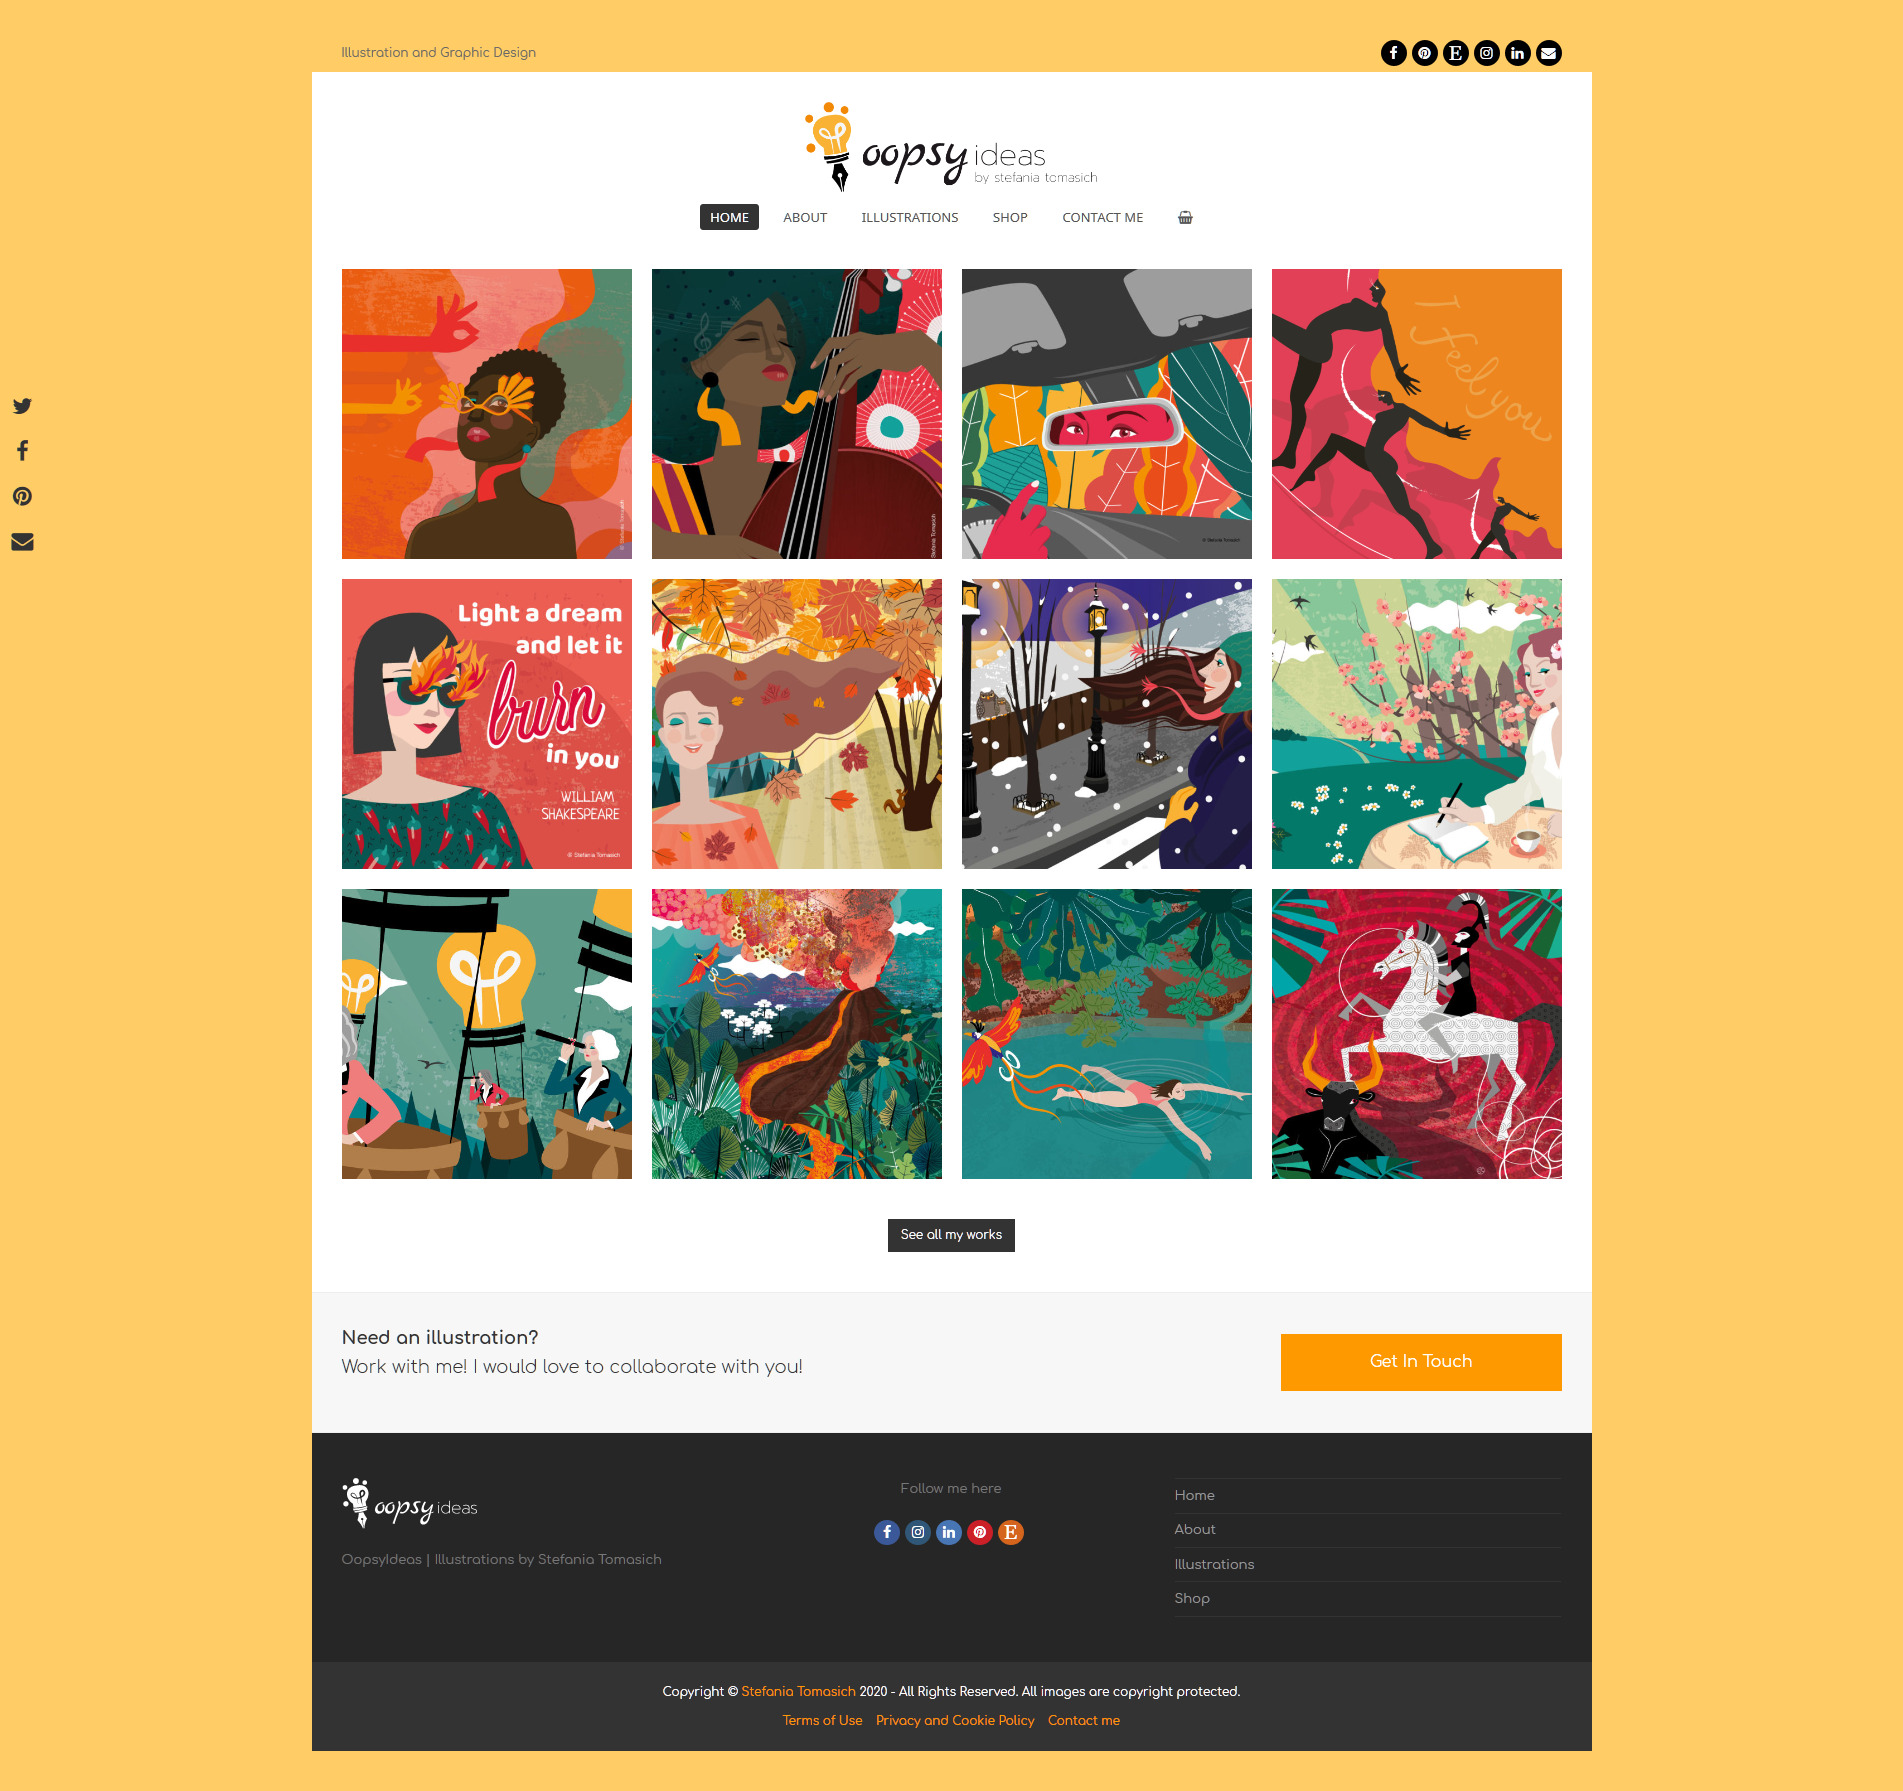 OppsyIdeas | Website About Stefania Tomasich's Illustrations